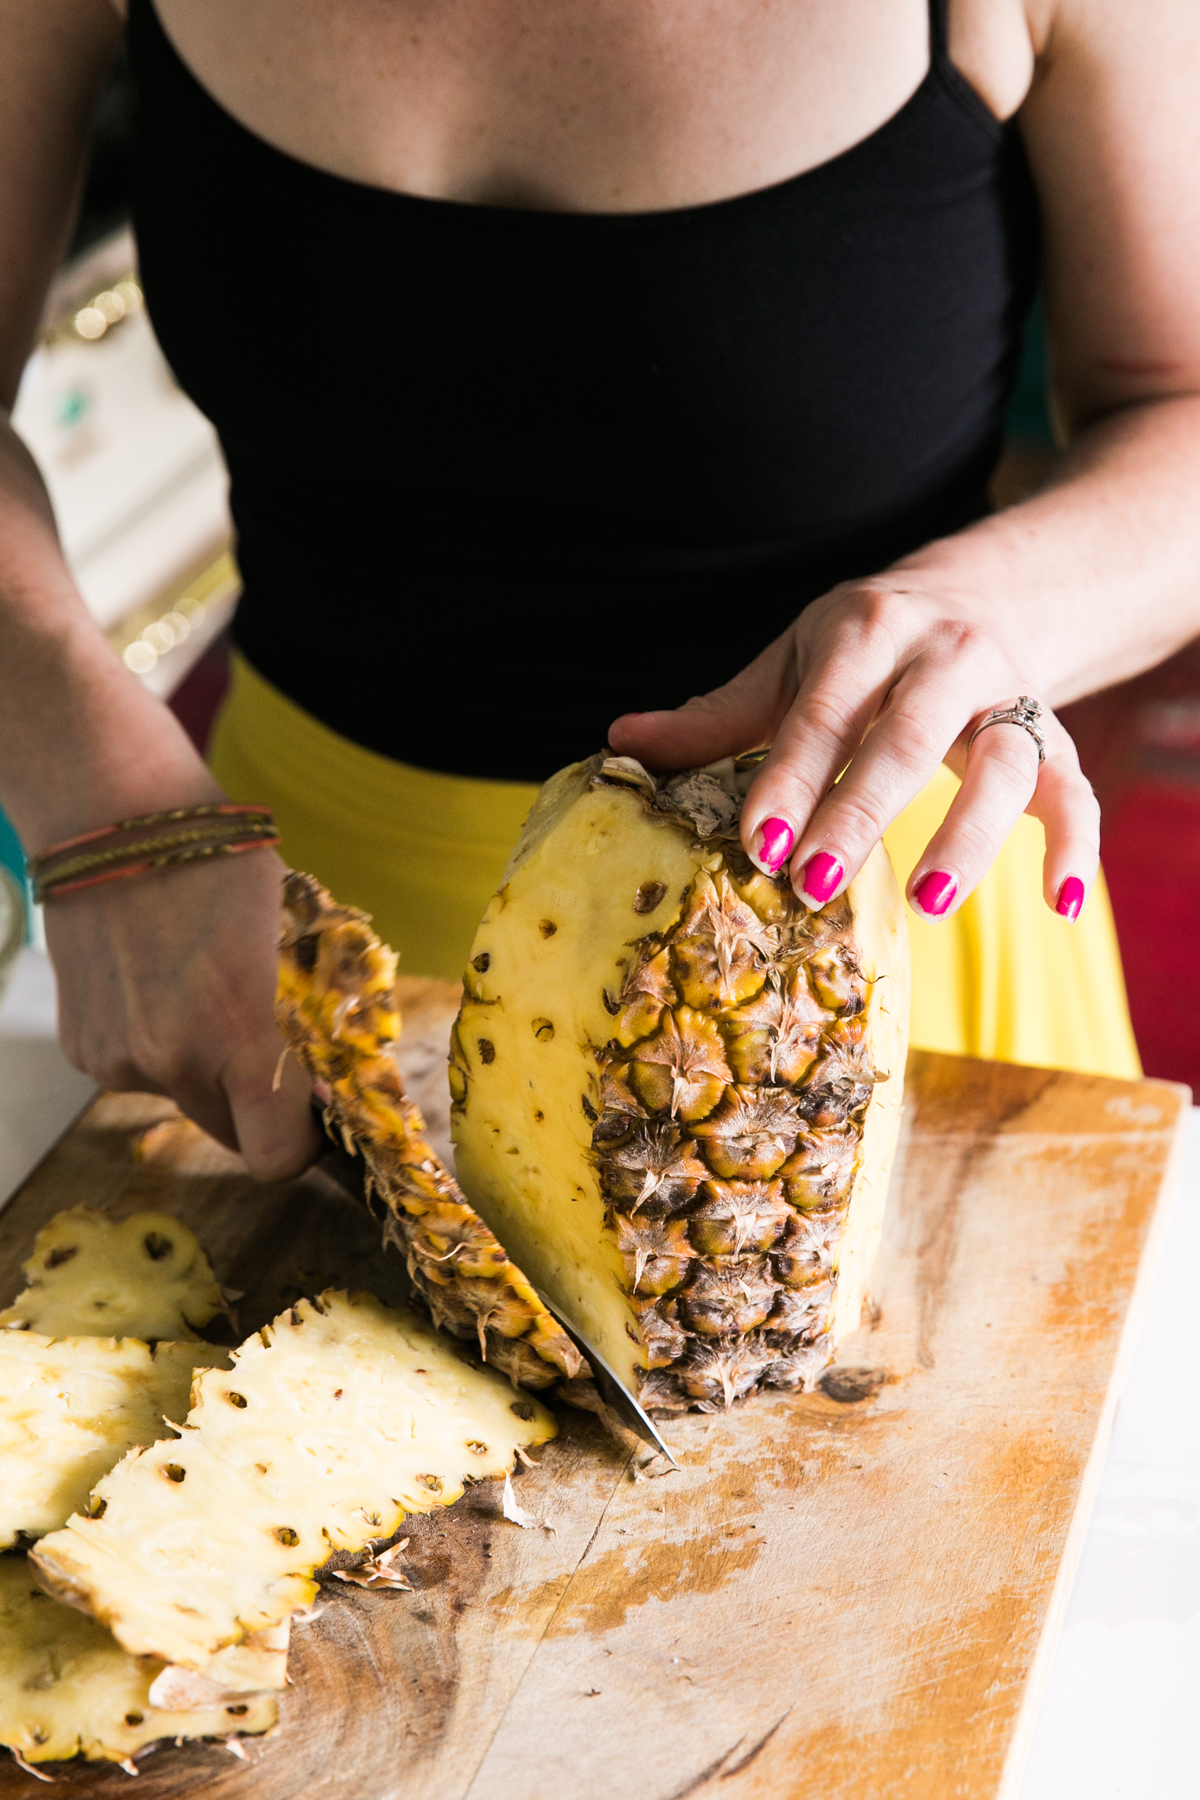 Grilled Pineapple and Jalapeño Margarita   The Spicy Señorita   Summer Cocktails   Tequila Cocktails   Jessica Brigham   Magazine Ready for Life